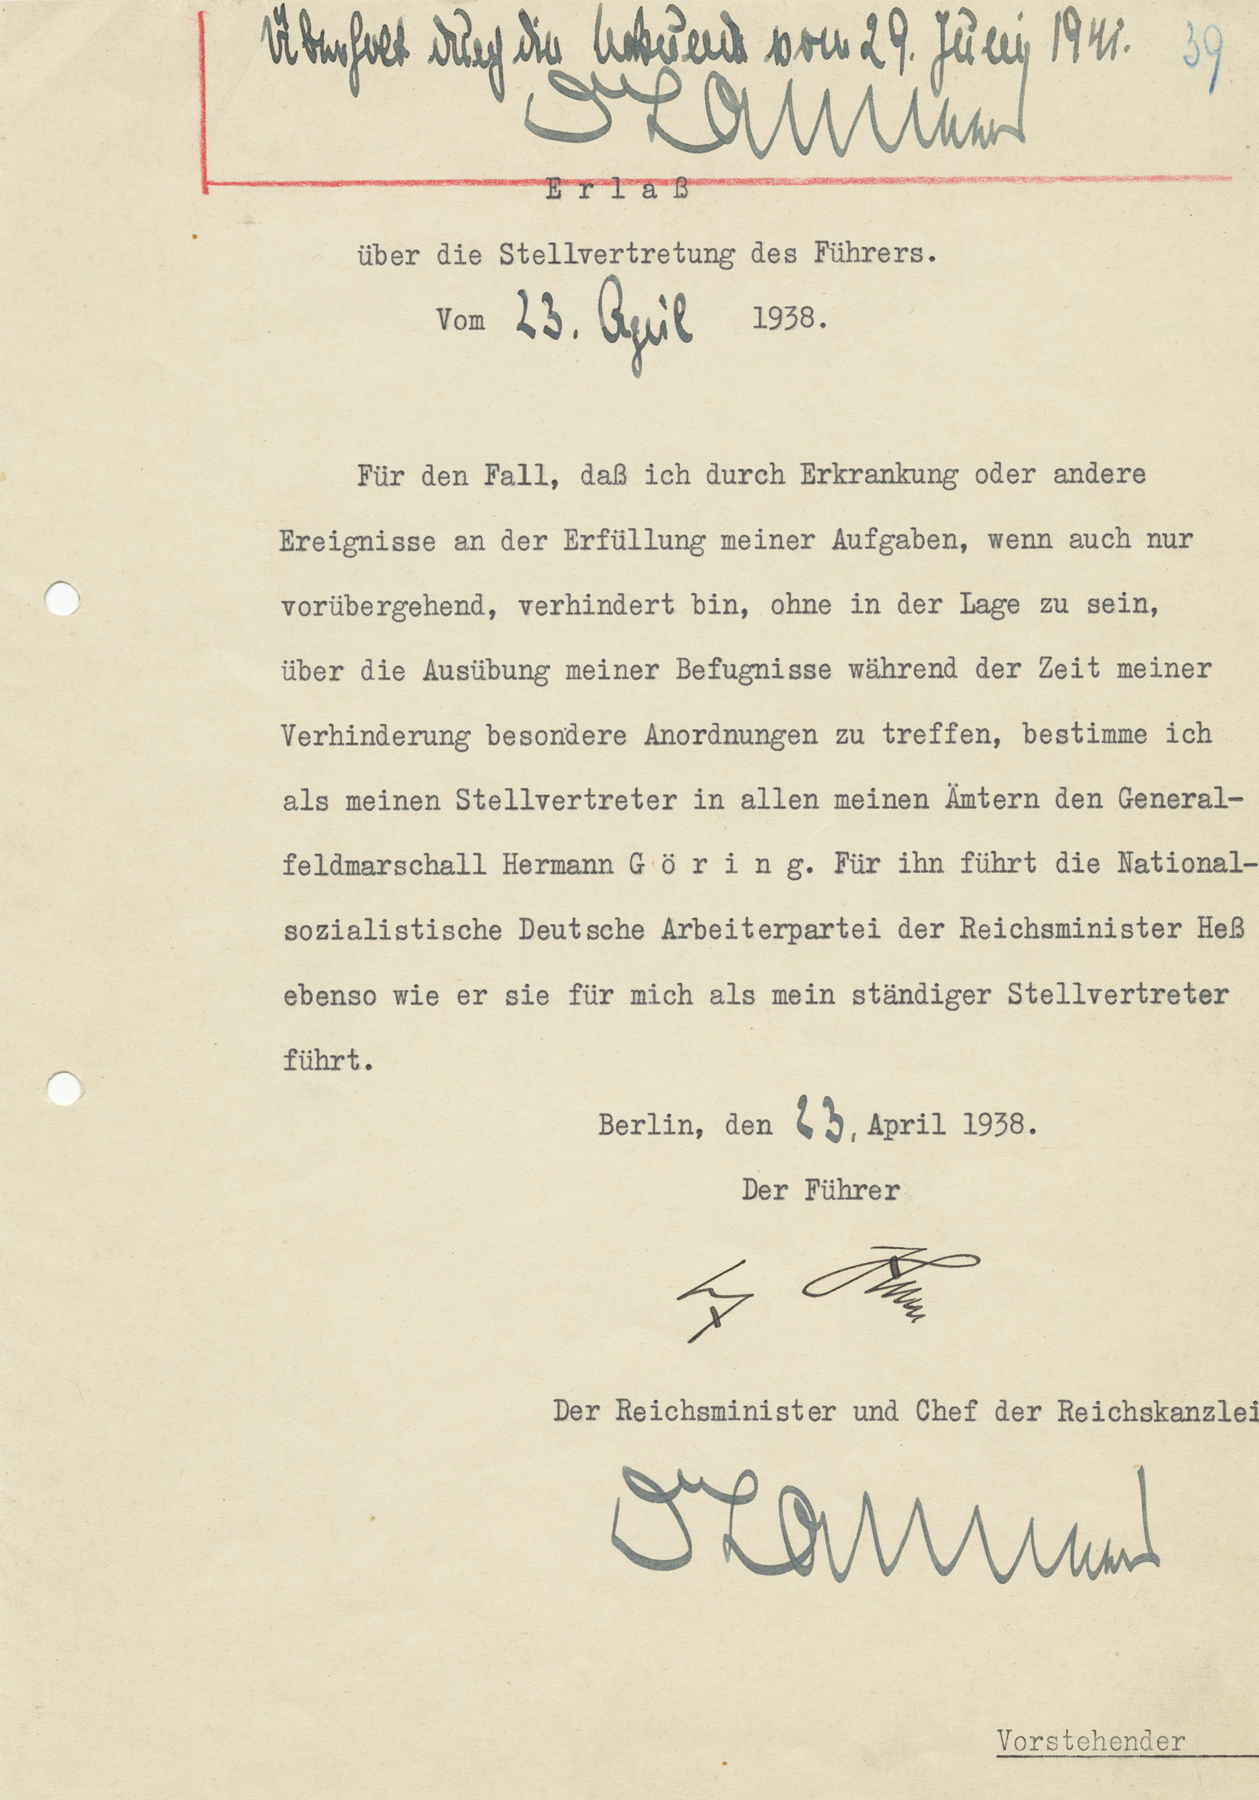 Adolf Hitler names Hermann Göring as his deputy in case of illness or other incapacity